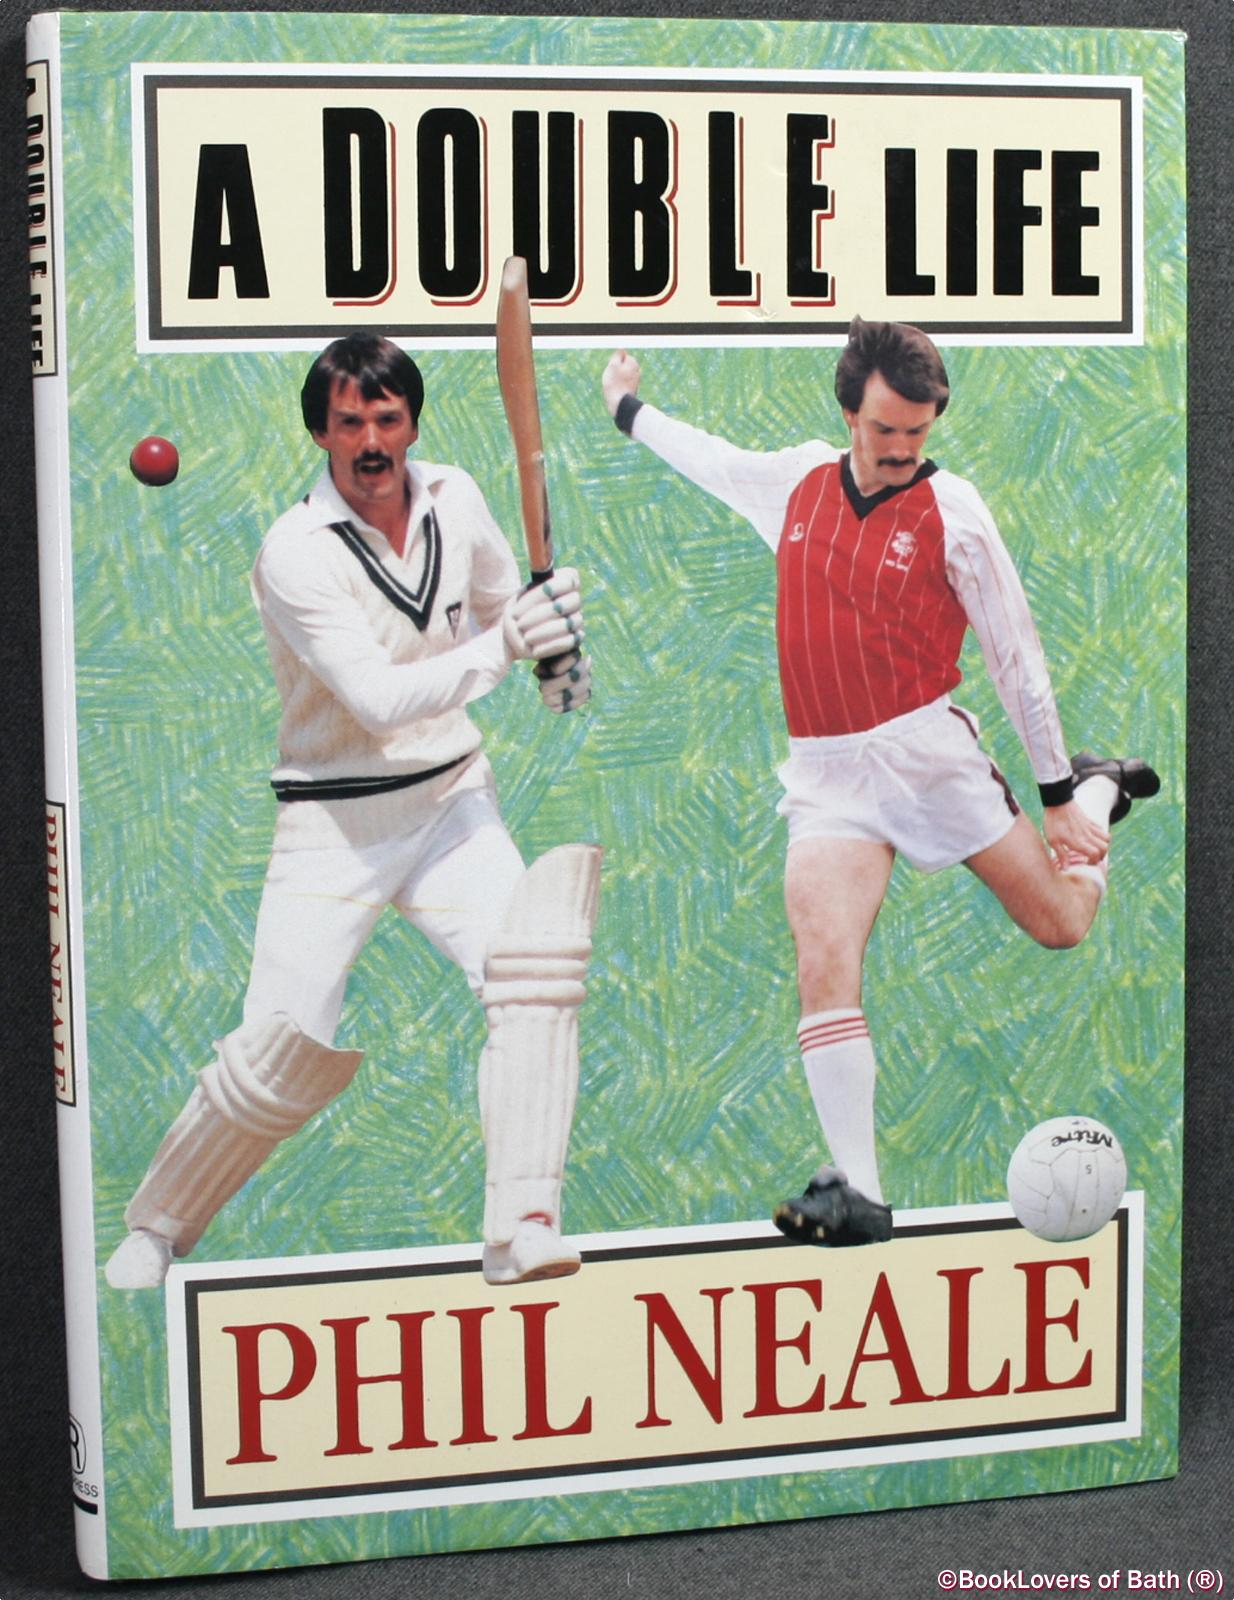 A Double Life - Phil Neale